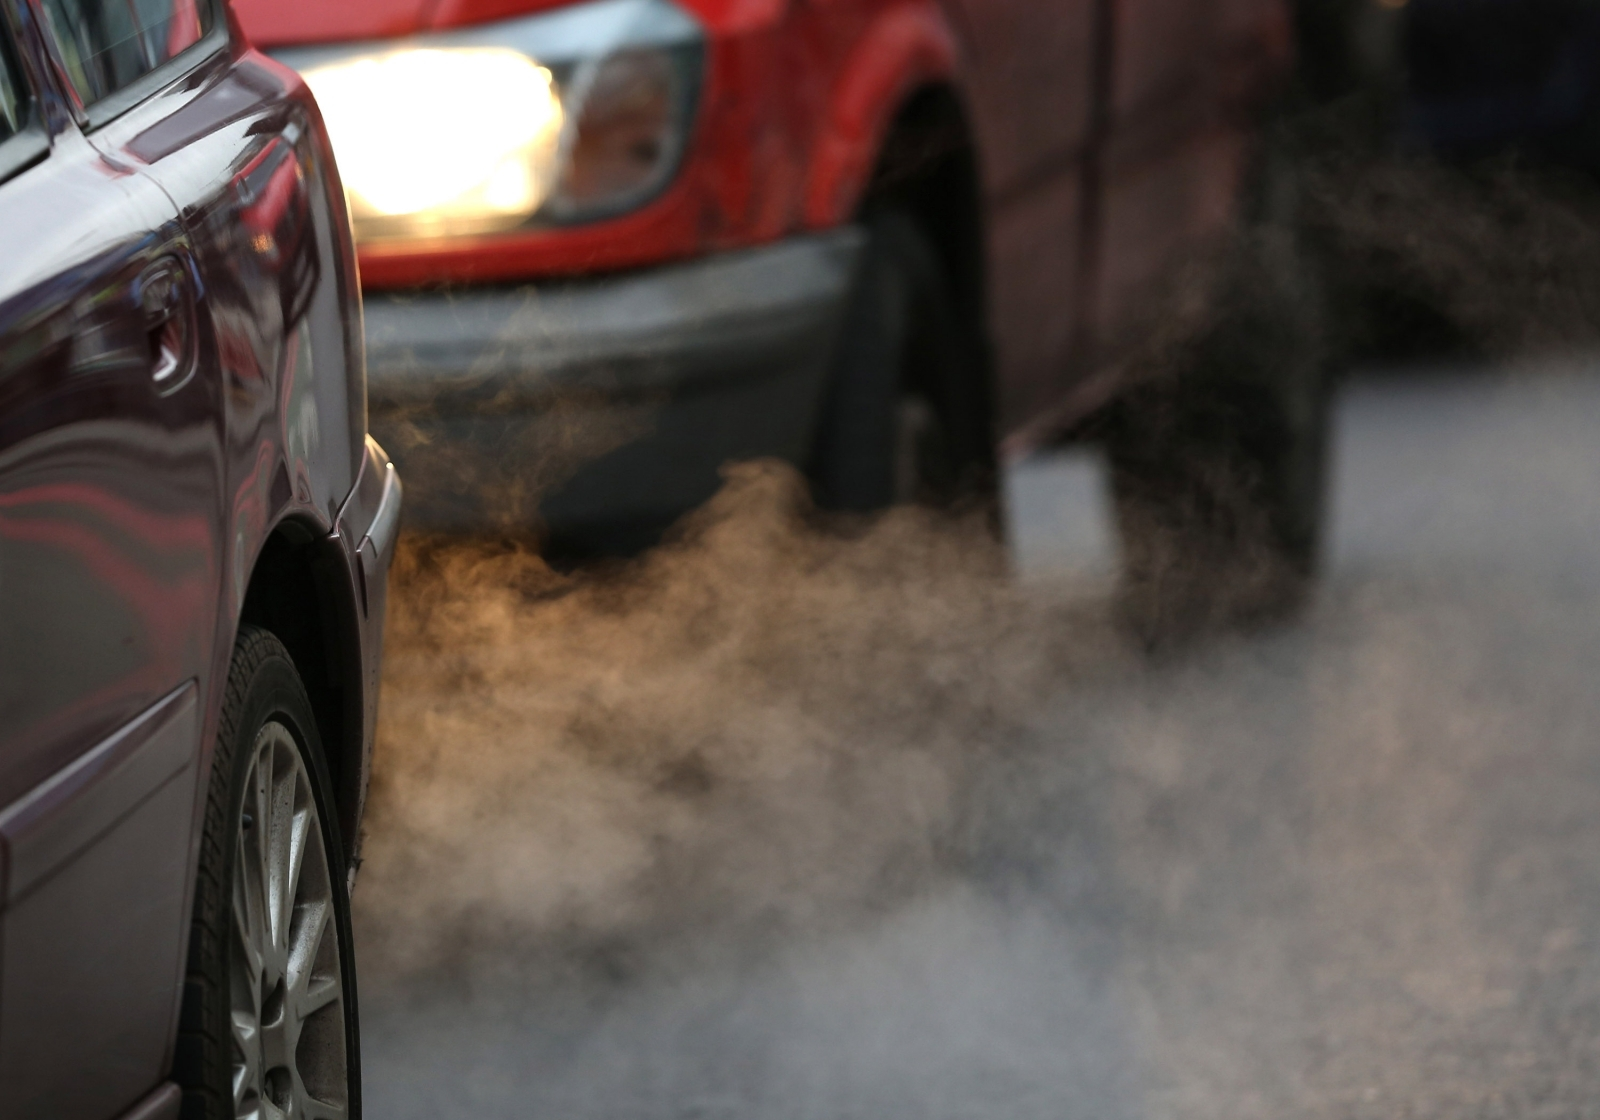 Exhaust fumes from a car in Putney High Street